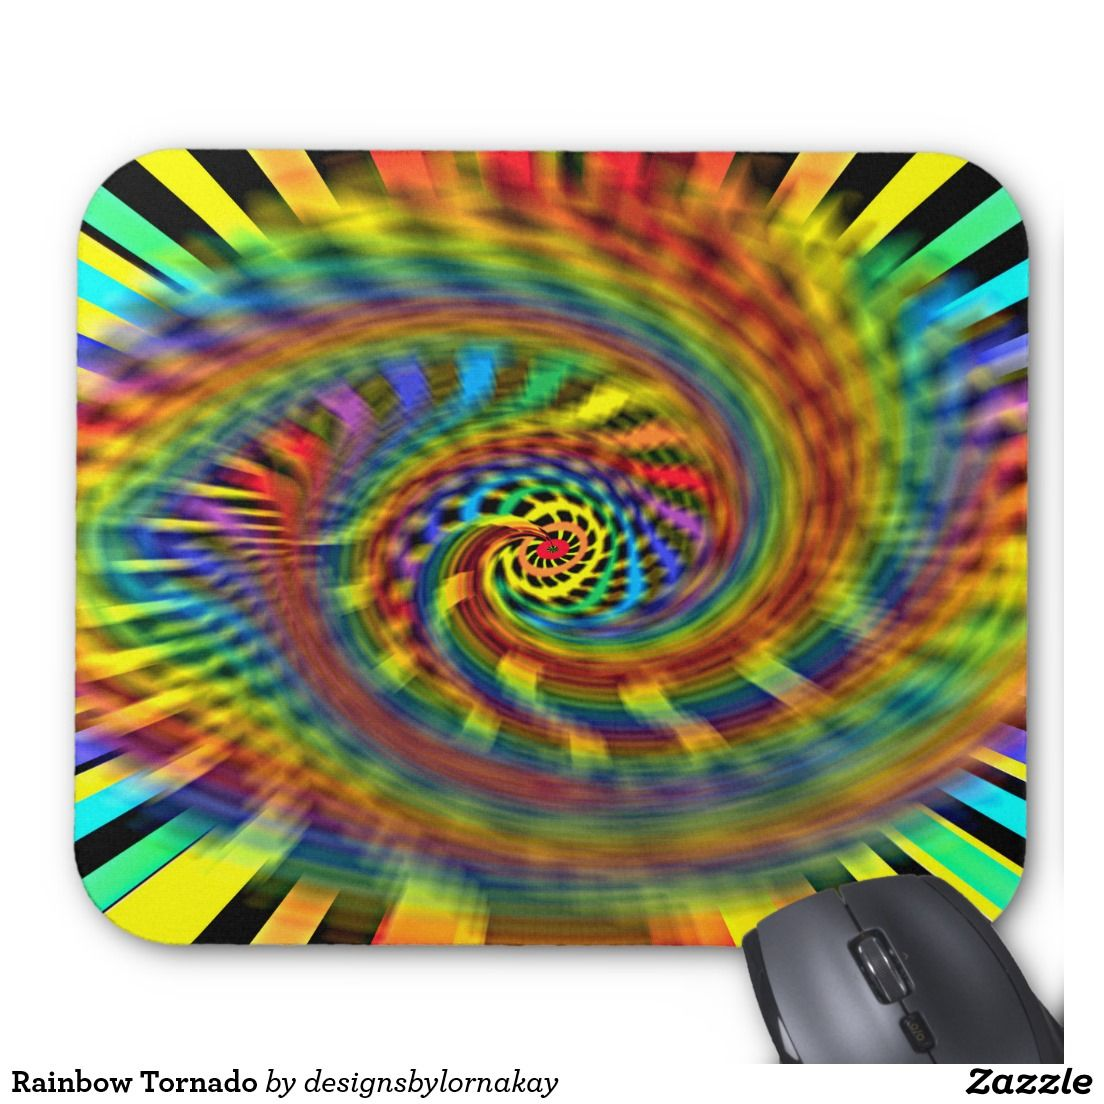 Rainbow Tornado Mouse Pad | Zazzle products designed by me | Pinterest